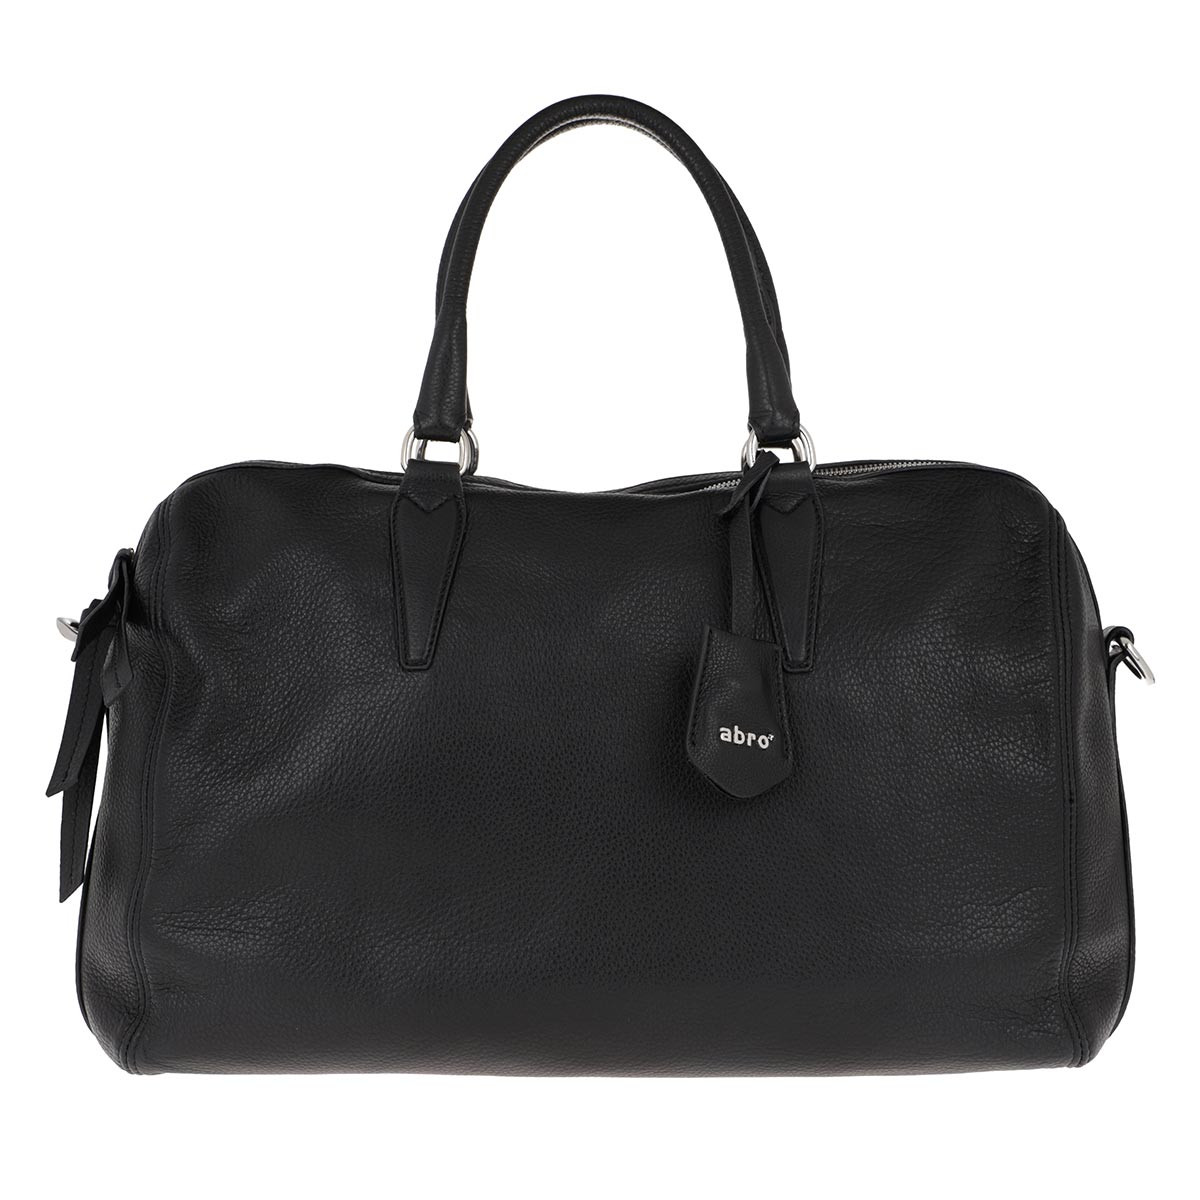 Abro Bowling Bag - Handle Bag Kim Big Black/Nickel - in schwarz - für Damen